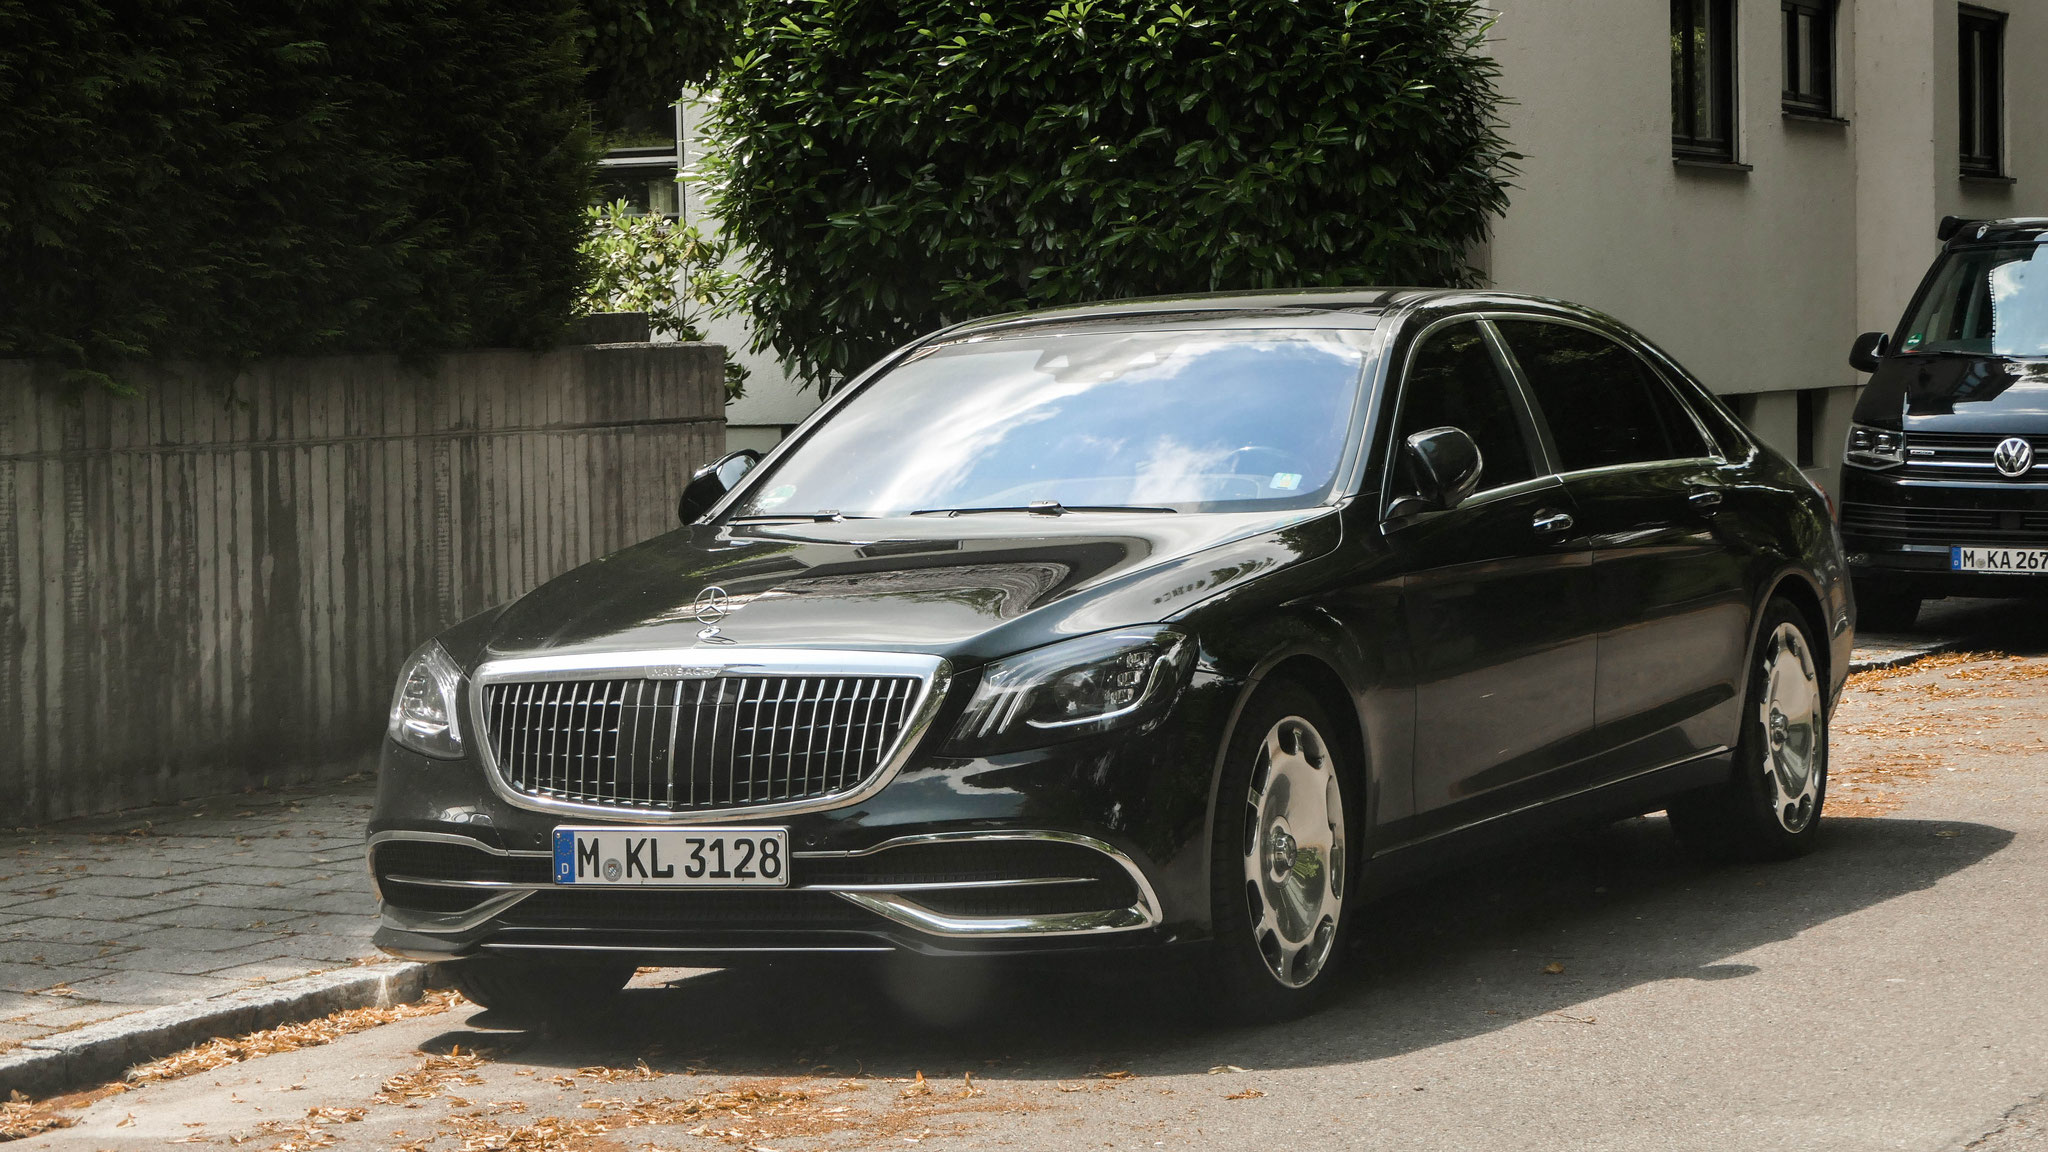 Mercedes Maybach S500 - M-KL-3128